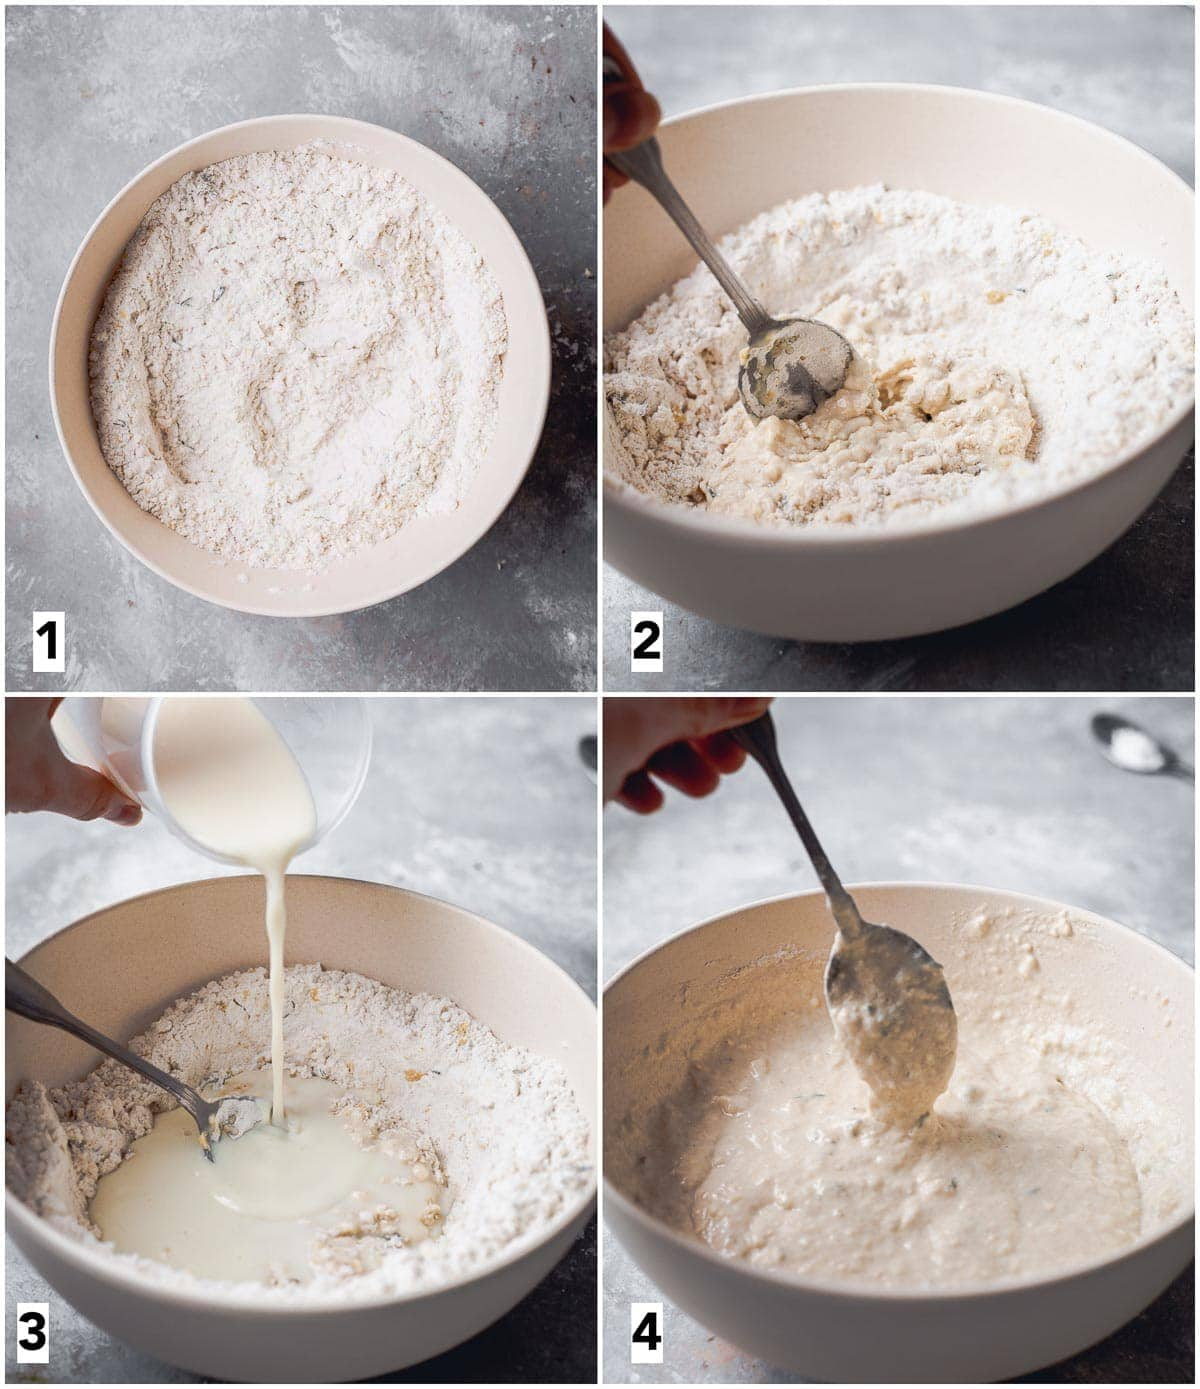 A collage of four images showing four steps in making dumpling dough.